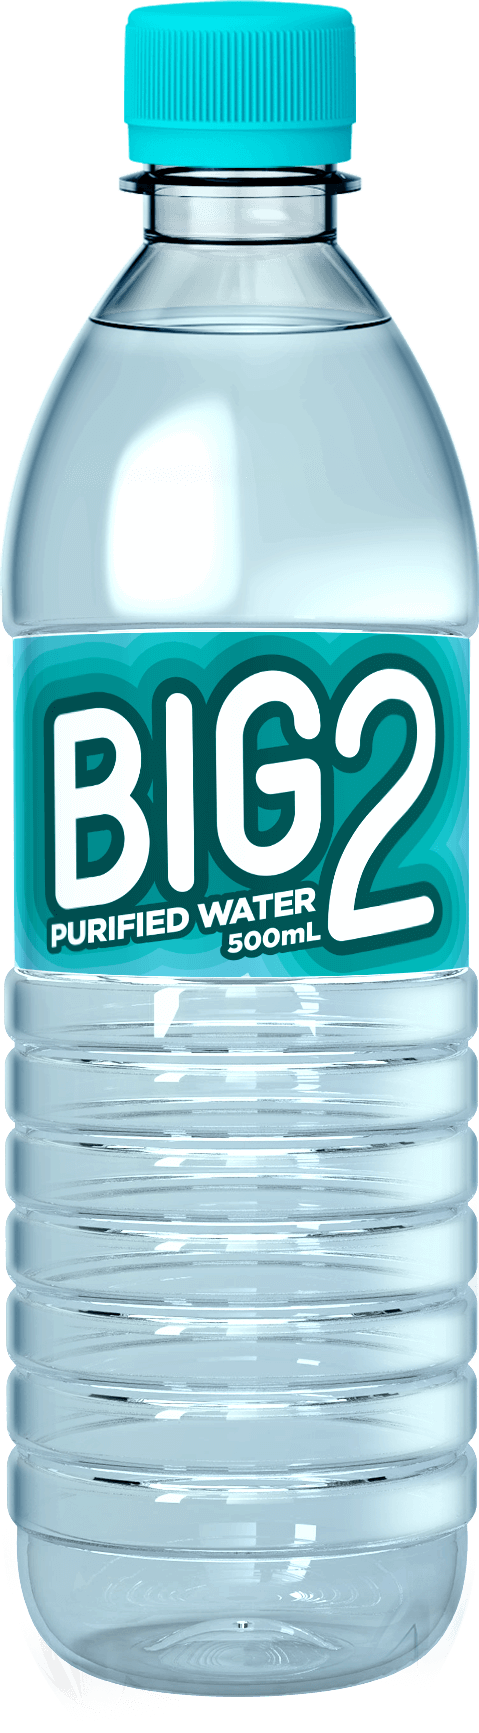 NutriAsia - Big2 500ml